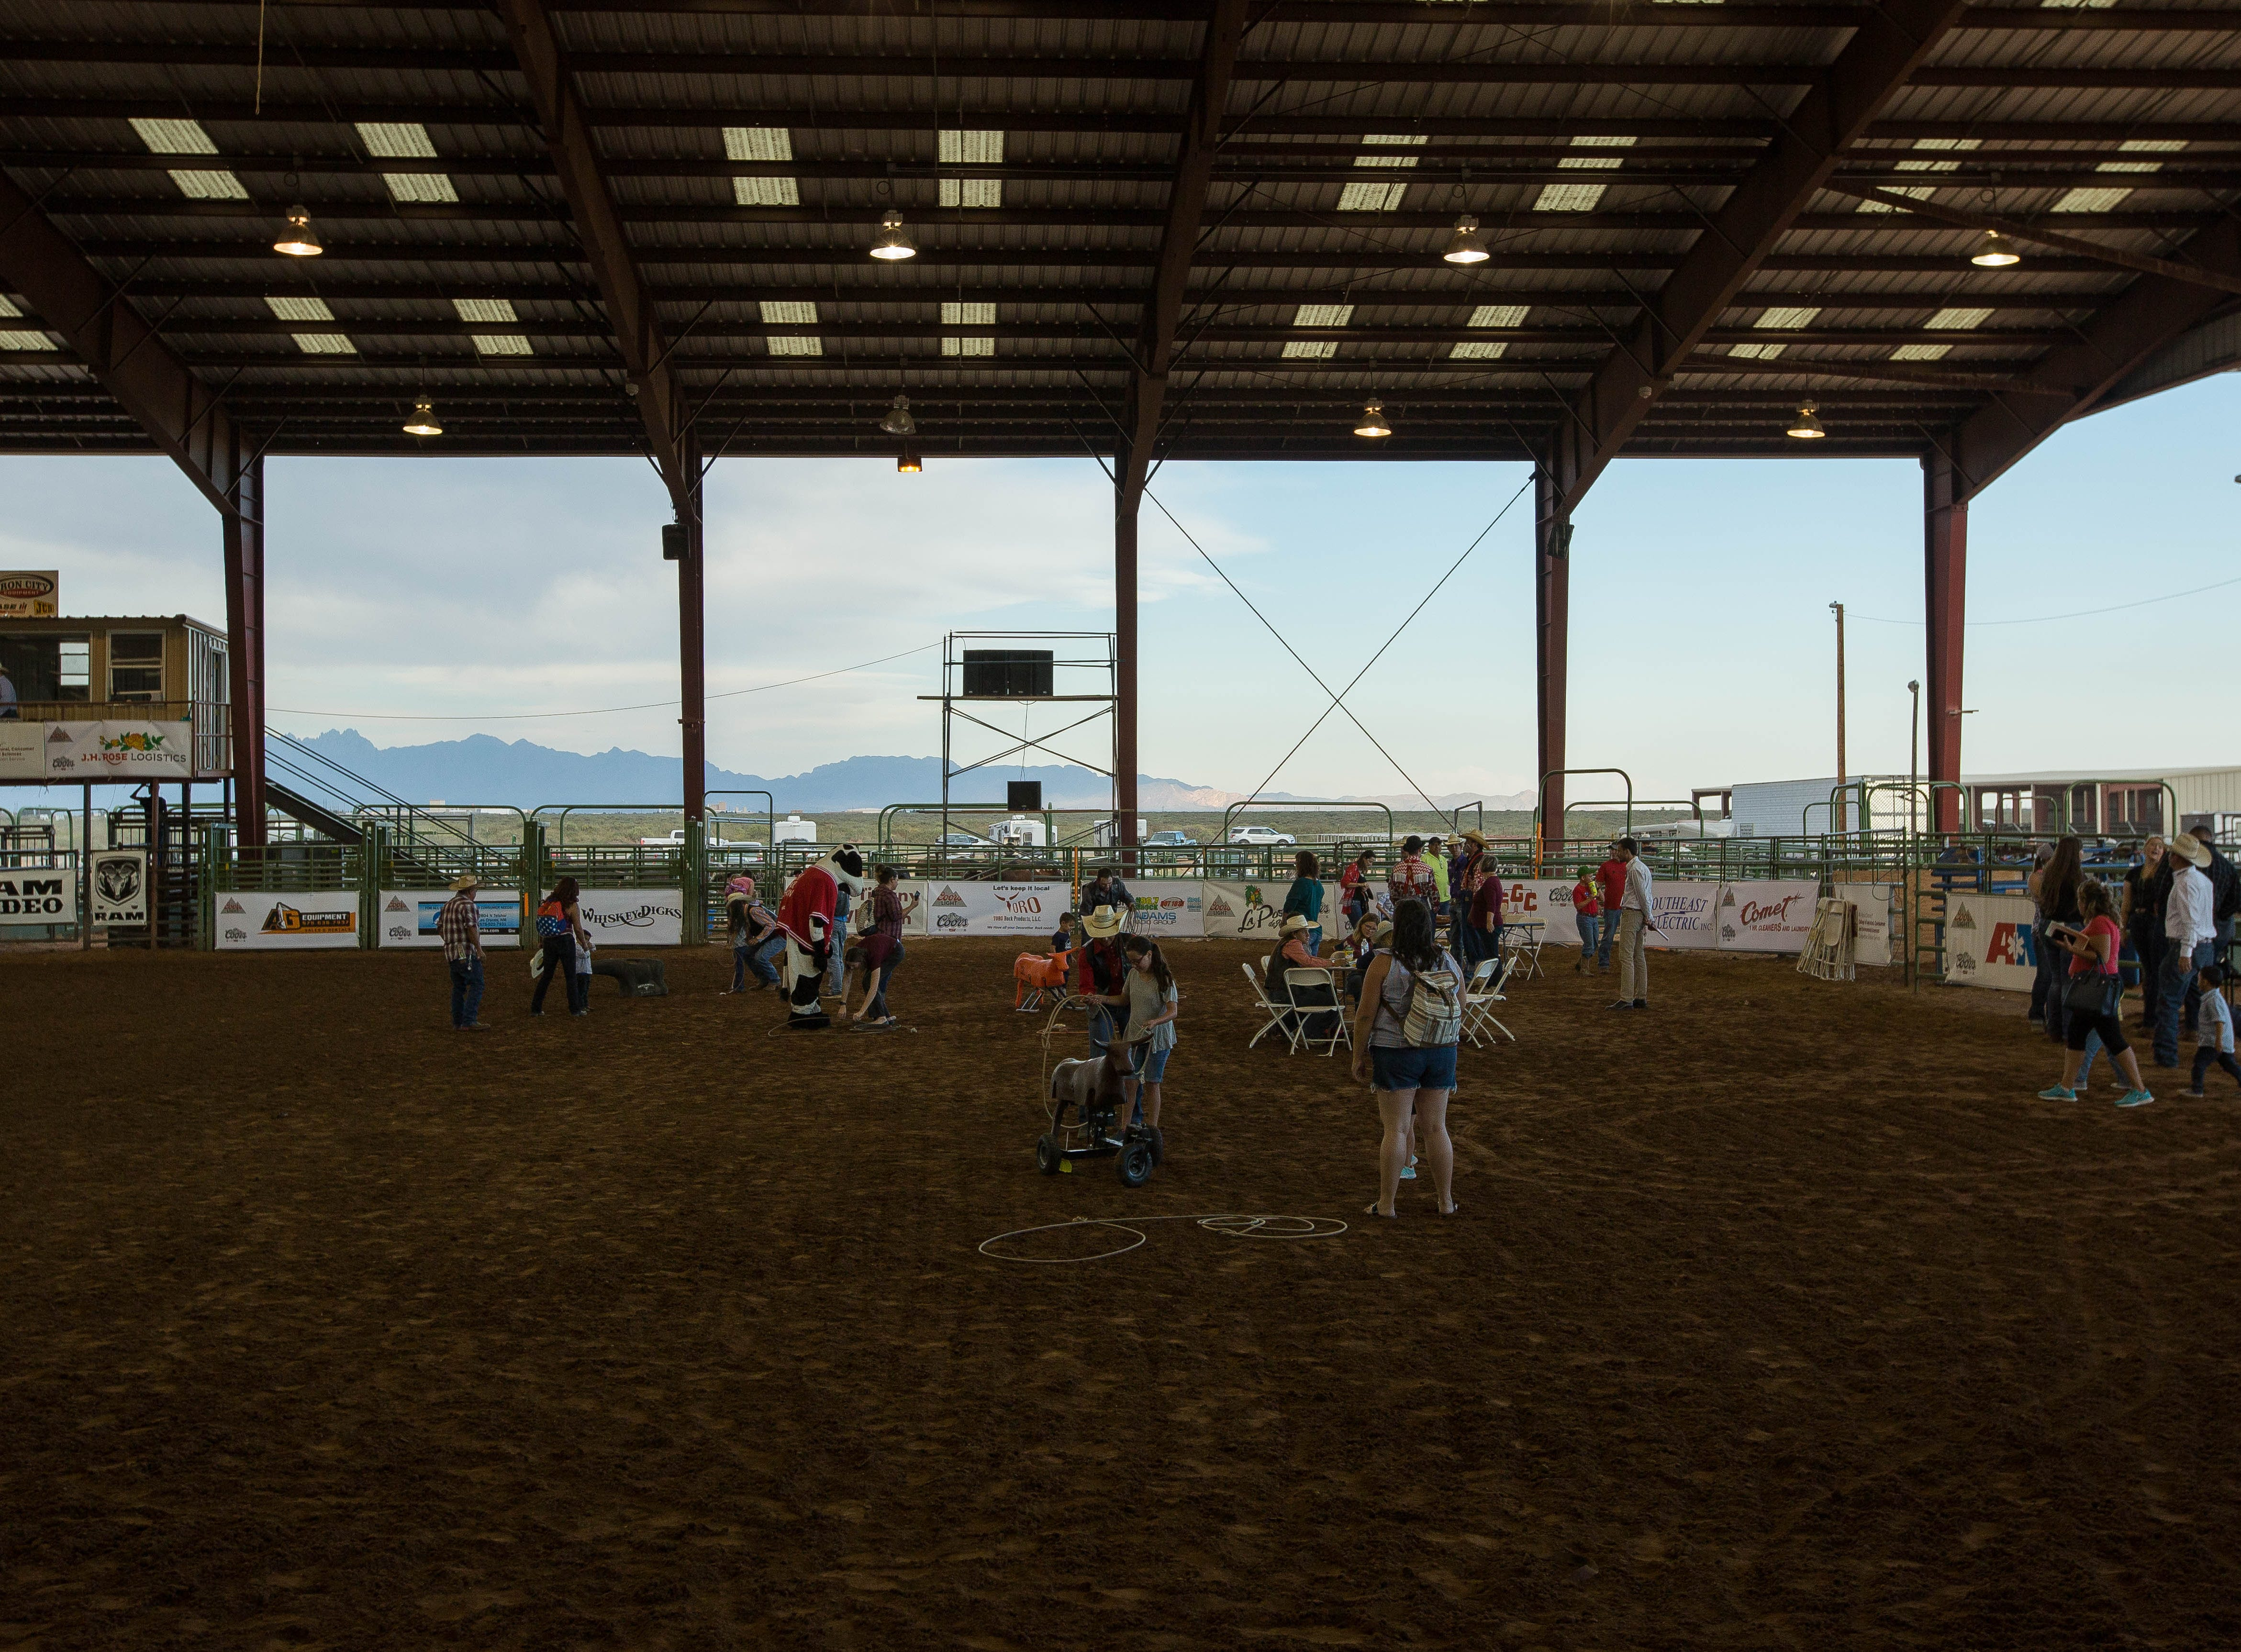 The Kid and Fans Zone in the Rodeo Arena at the Southern New Mexico State Fair and Rodeo,